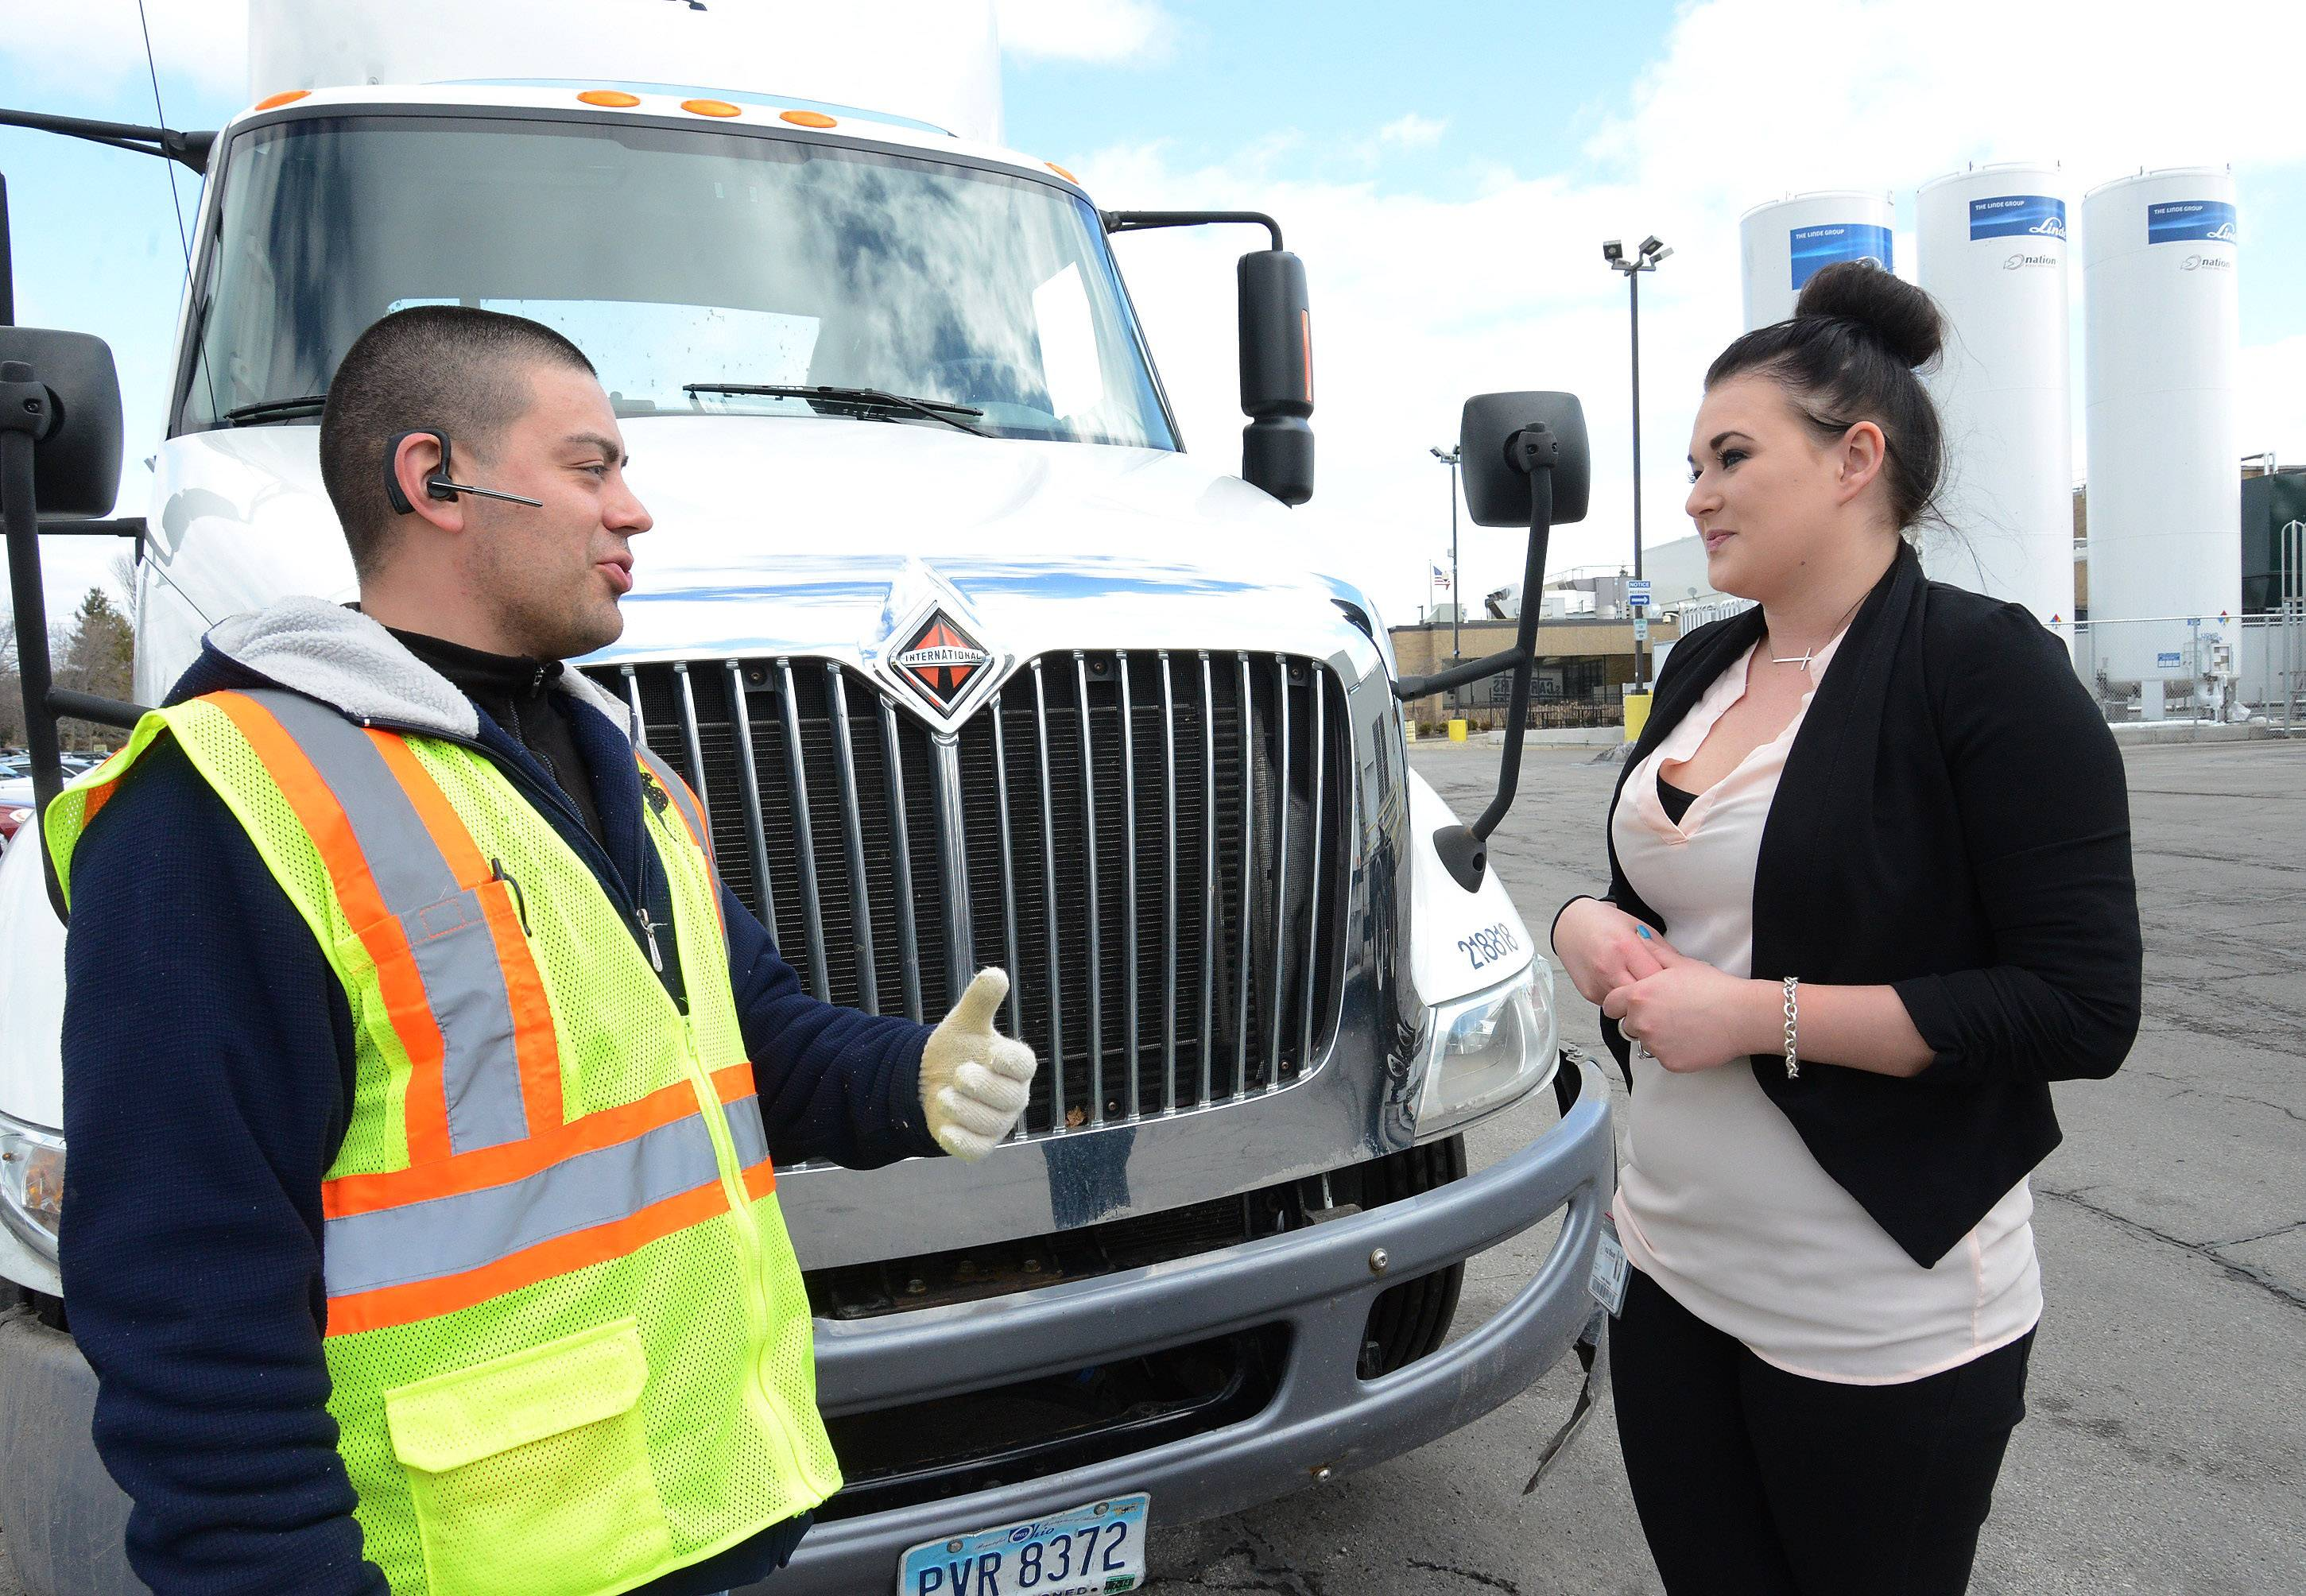 Nicole Kozodaj, with driver Brian Navas, earned a certificate in business management from Harper College and now works at Nation Pizza and Foods, a manufacturer with close ties to the Promise program.